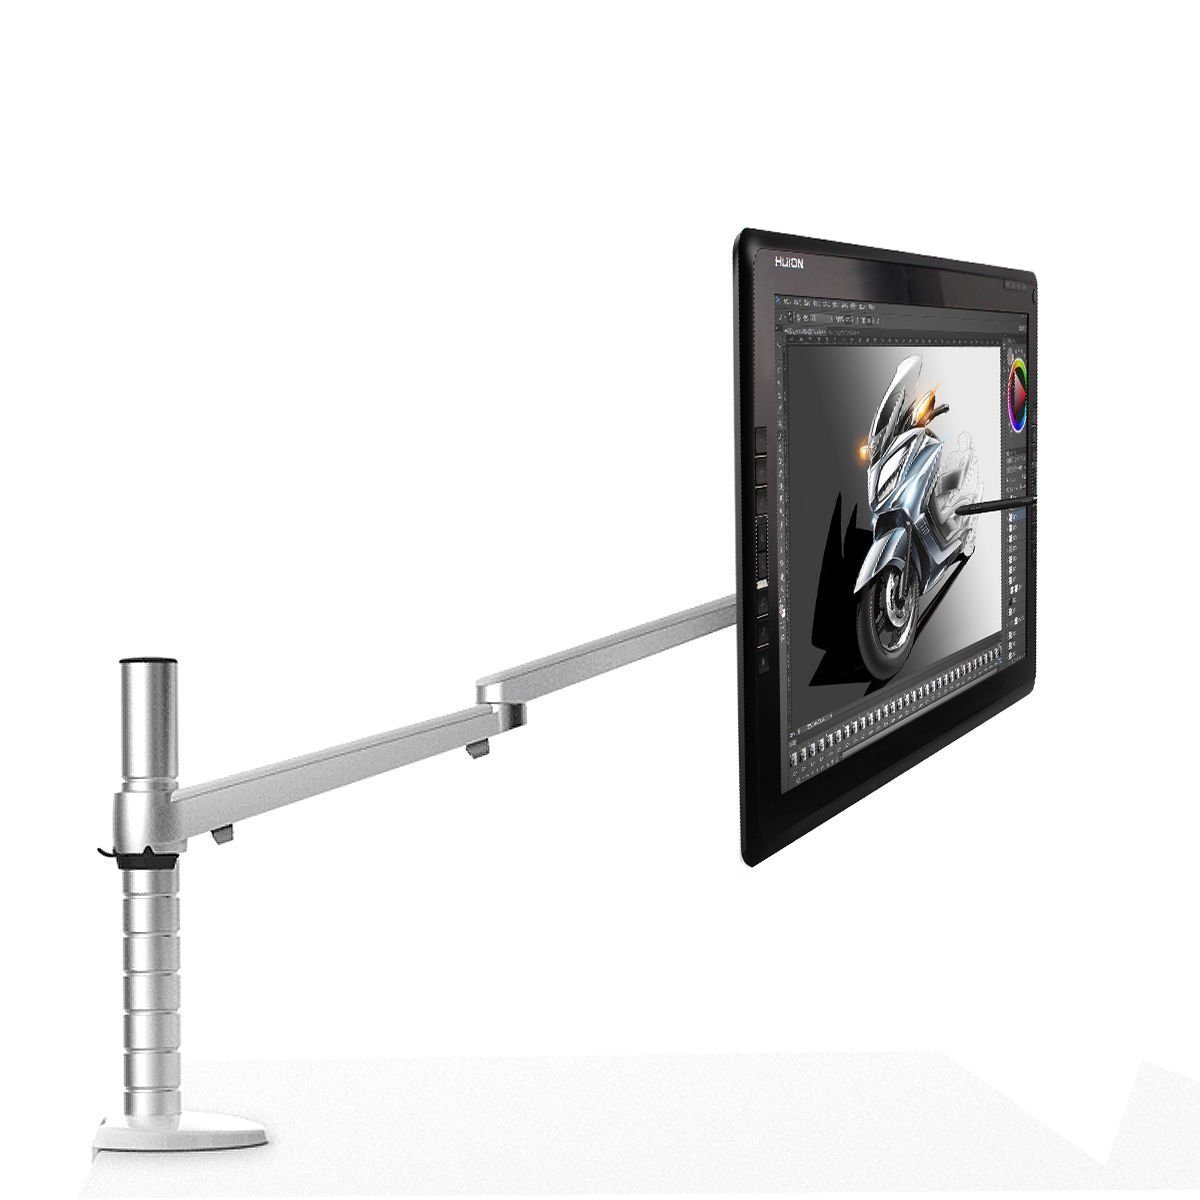 Huion Computer Monitor Stand Single Drawing Tablet Monitor Mounting Arm for GT-191, GT-220 V2, GT-185, GT-190 and more